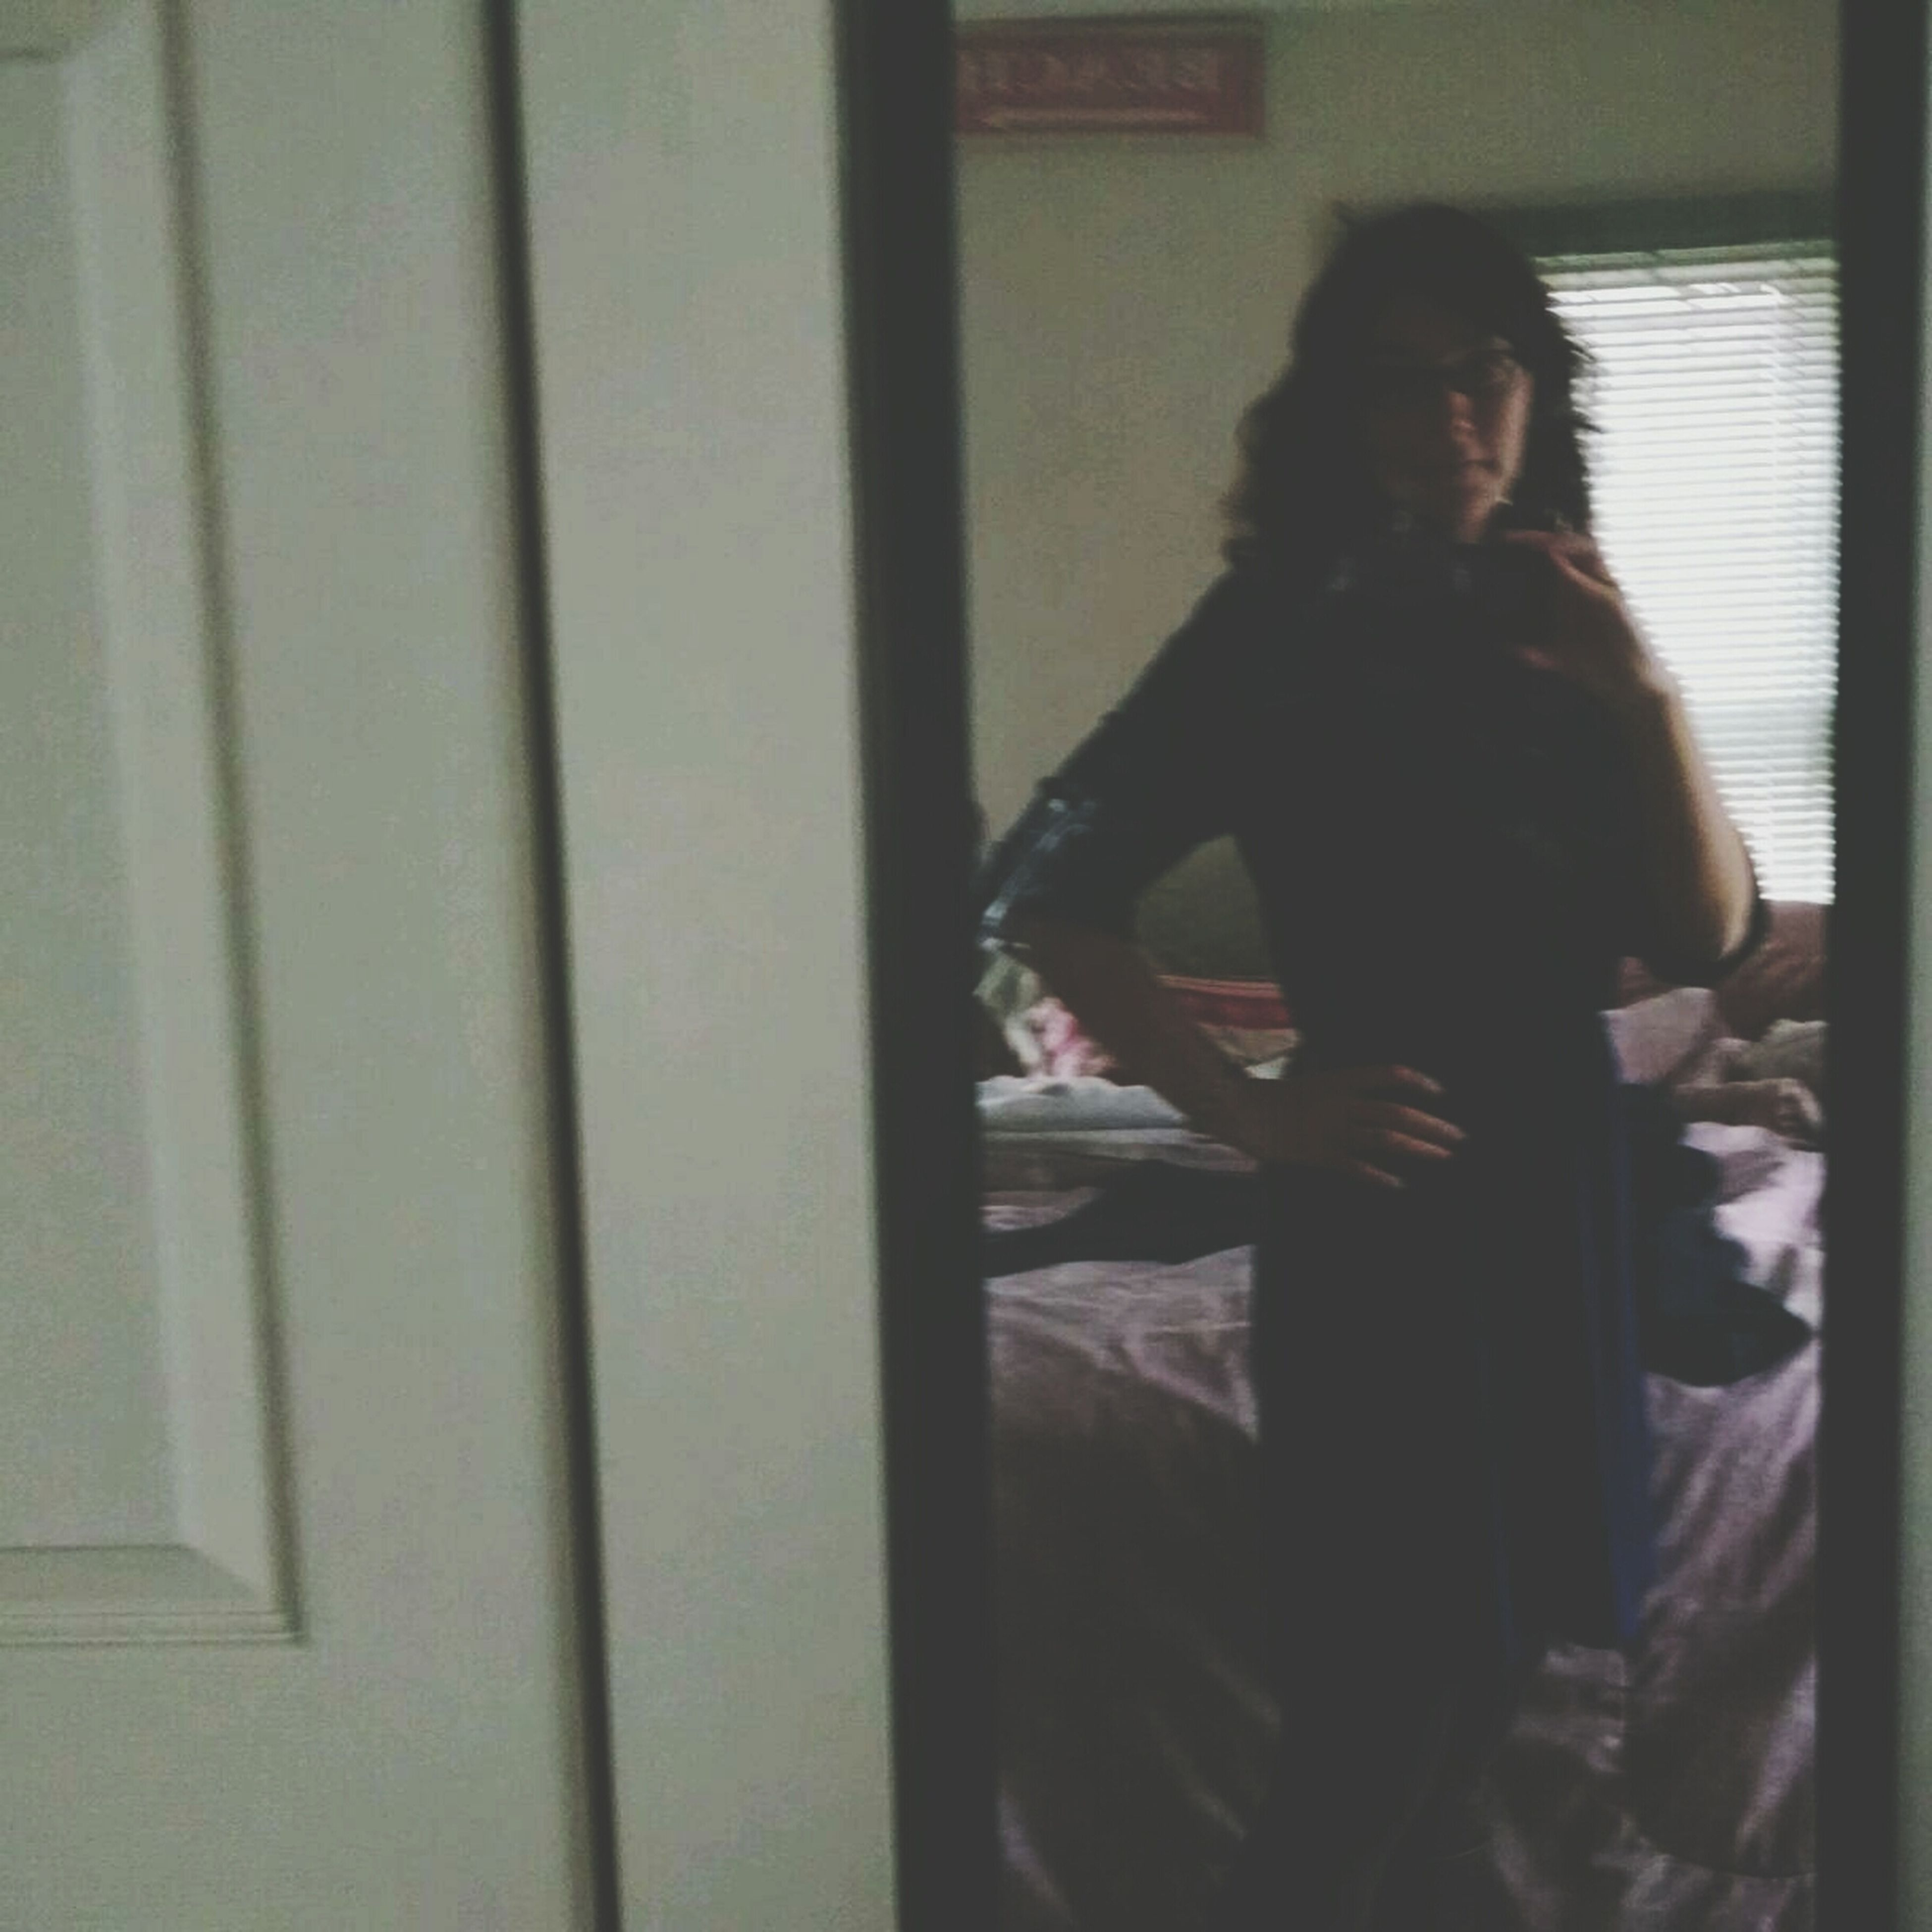 indoors, young adult, lifestyles, young women, standing, casual clothing, person, leisure activity, three quarter length, long hair, waist up, front view, wall - building feature, home interior, side view, contemplation, window